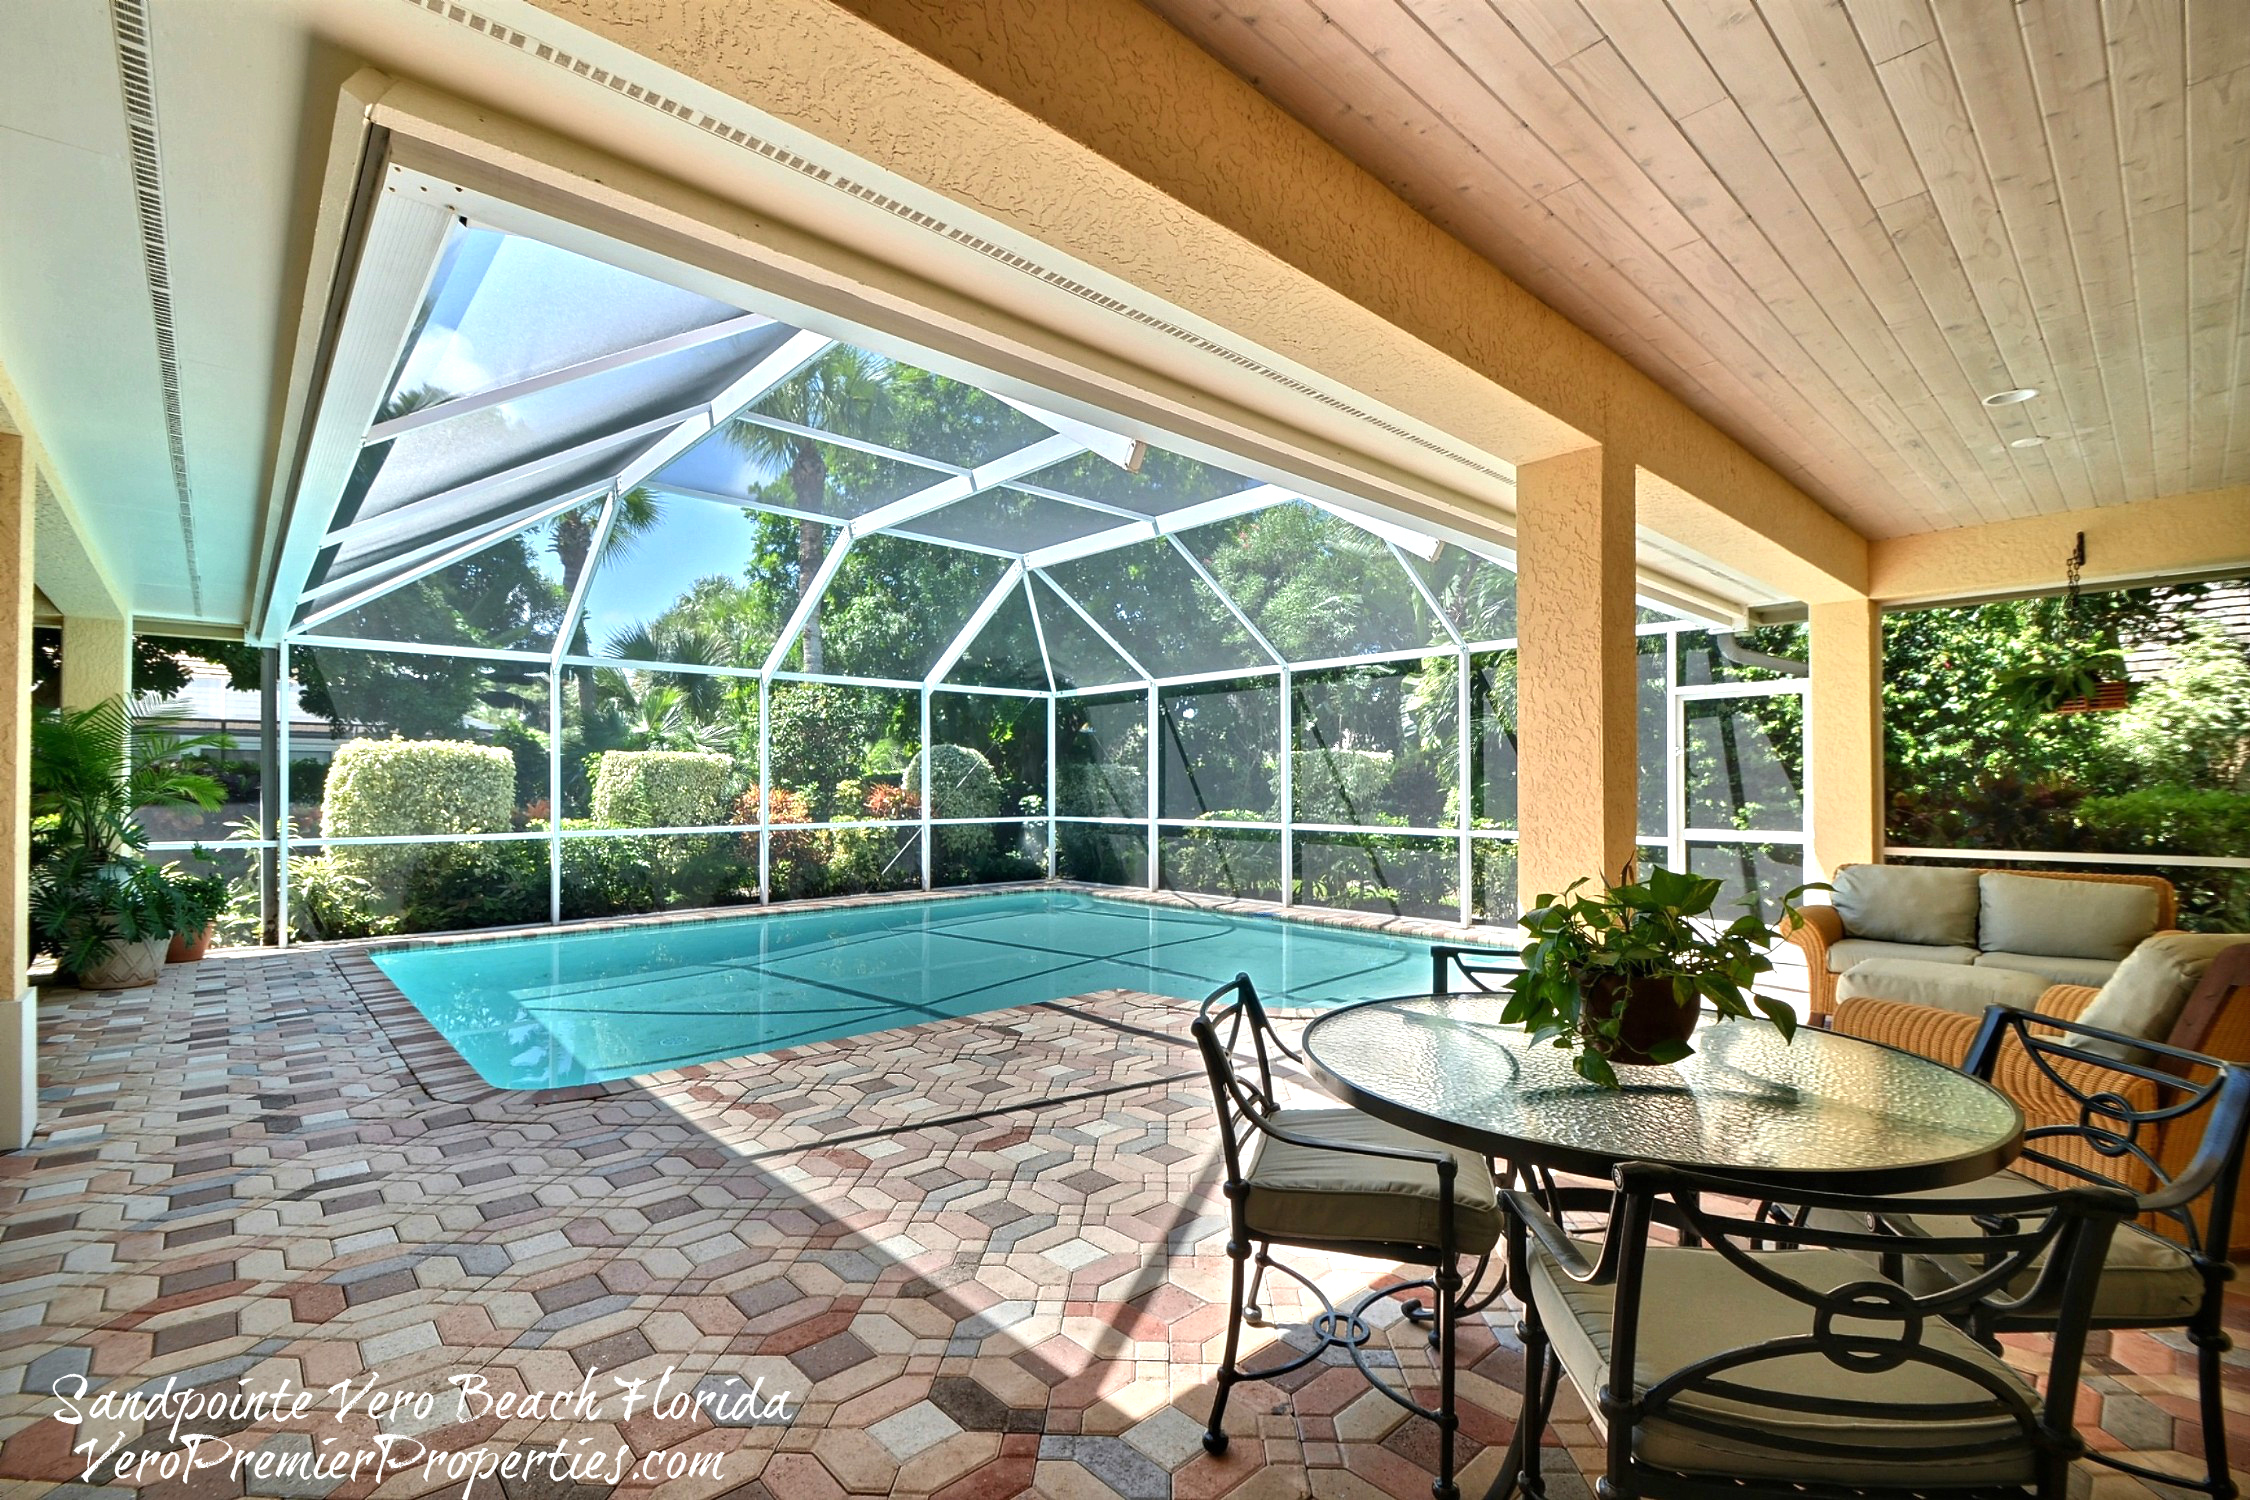 Vero beach pool home gated community with beach access for Home outdoor pool